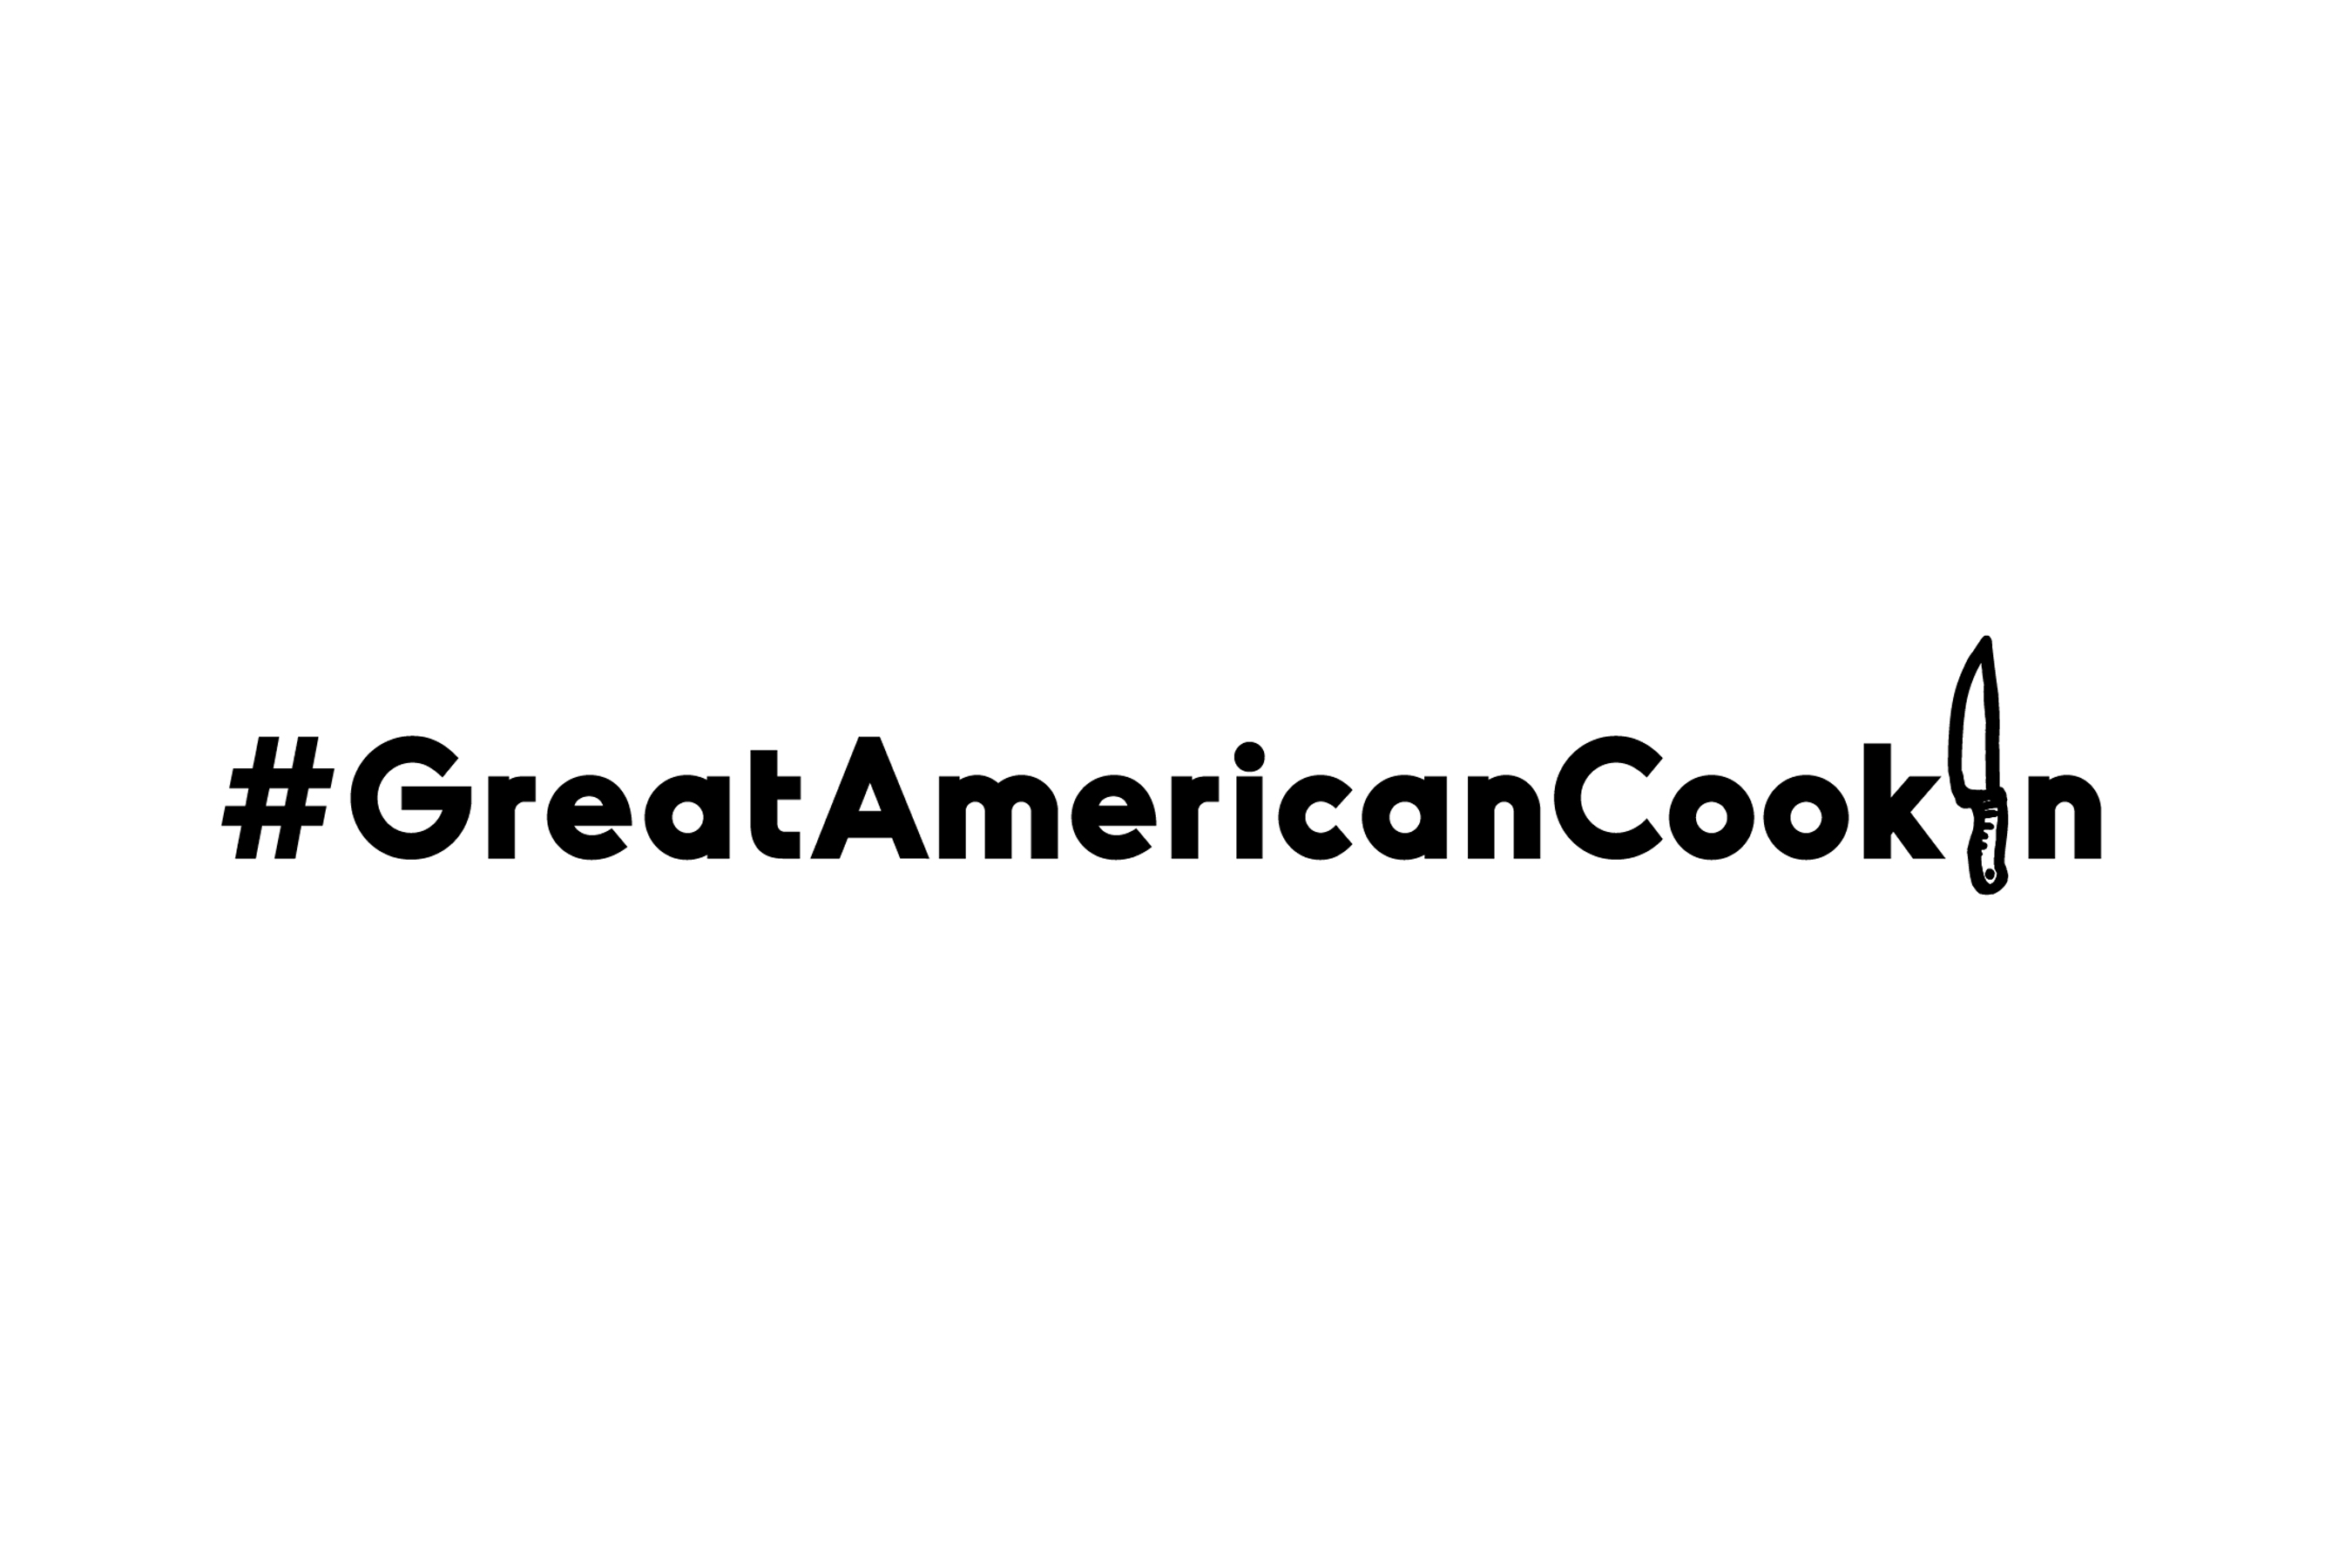 Pledge to participate by using the #GreatAmericanCookIn hashtag and share food photos on Twitter or Instagram from your own one-week challenge. Check out Chef Catherine's How to Cook In for One Week for more tips and tricks!